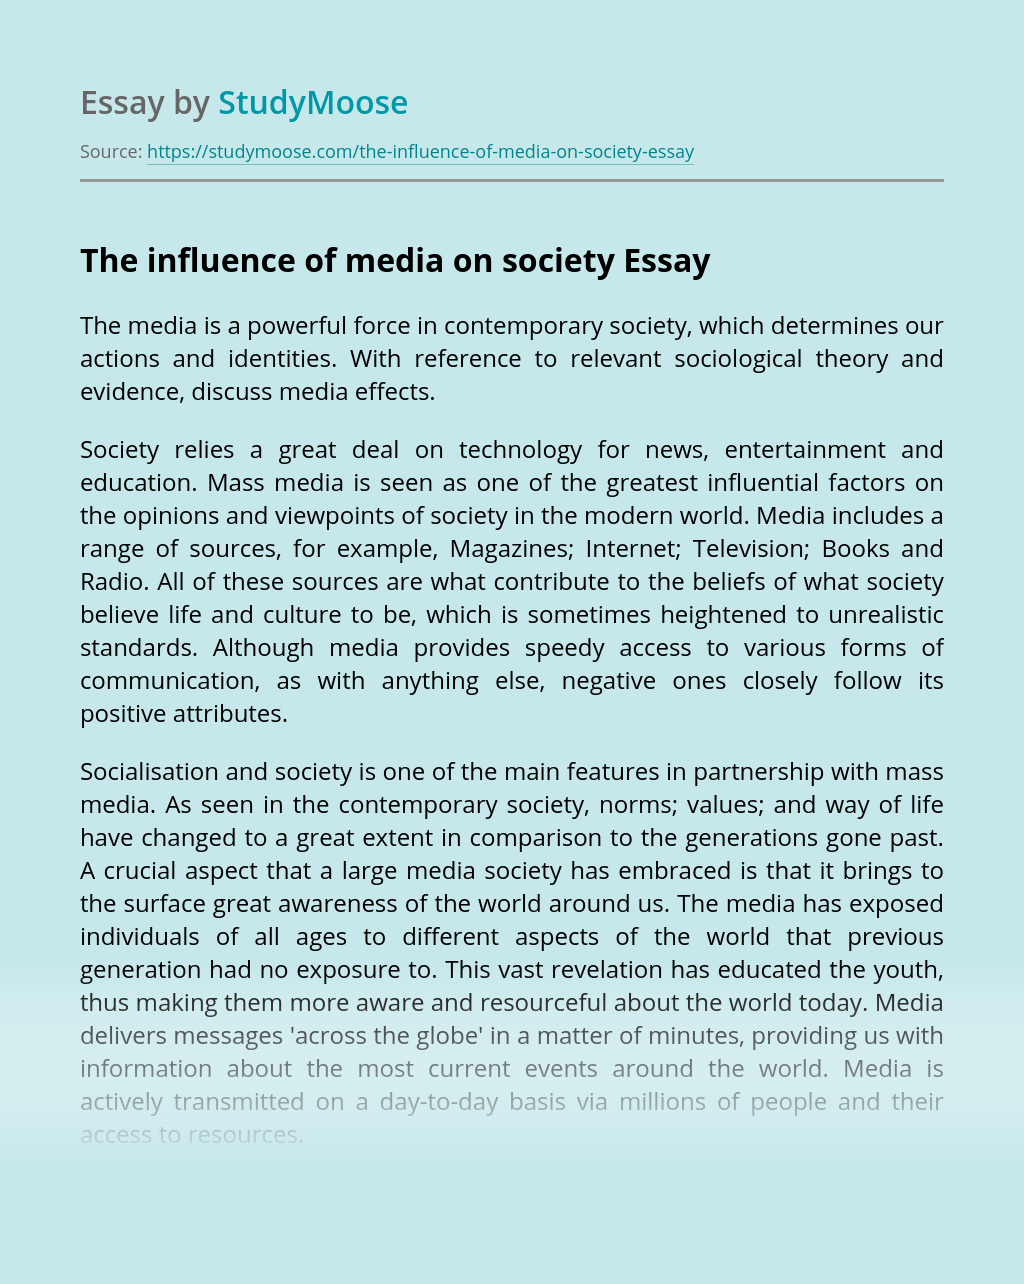 The influence of media on society